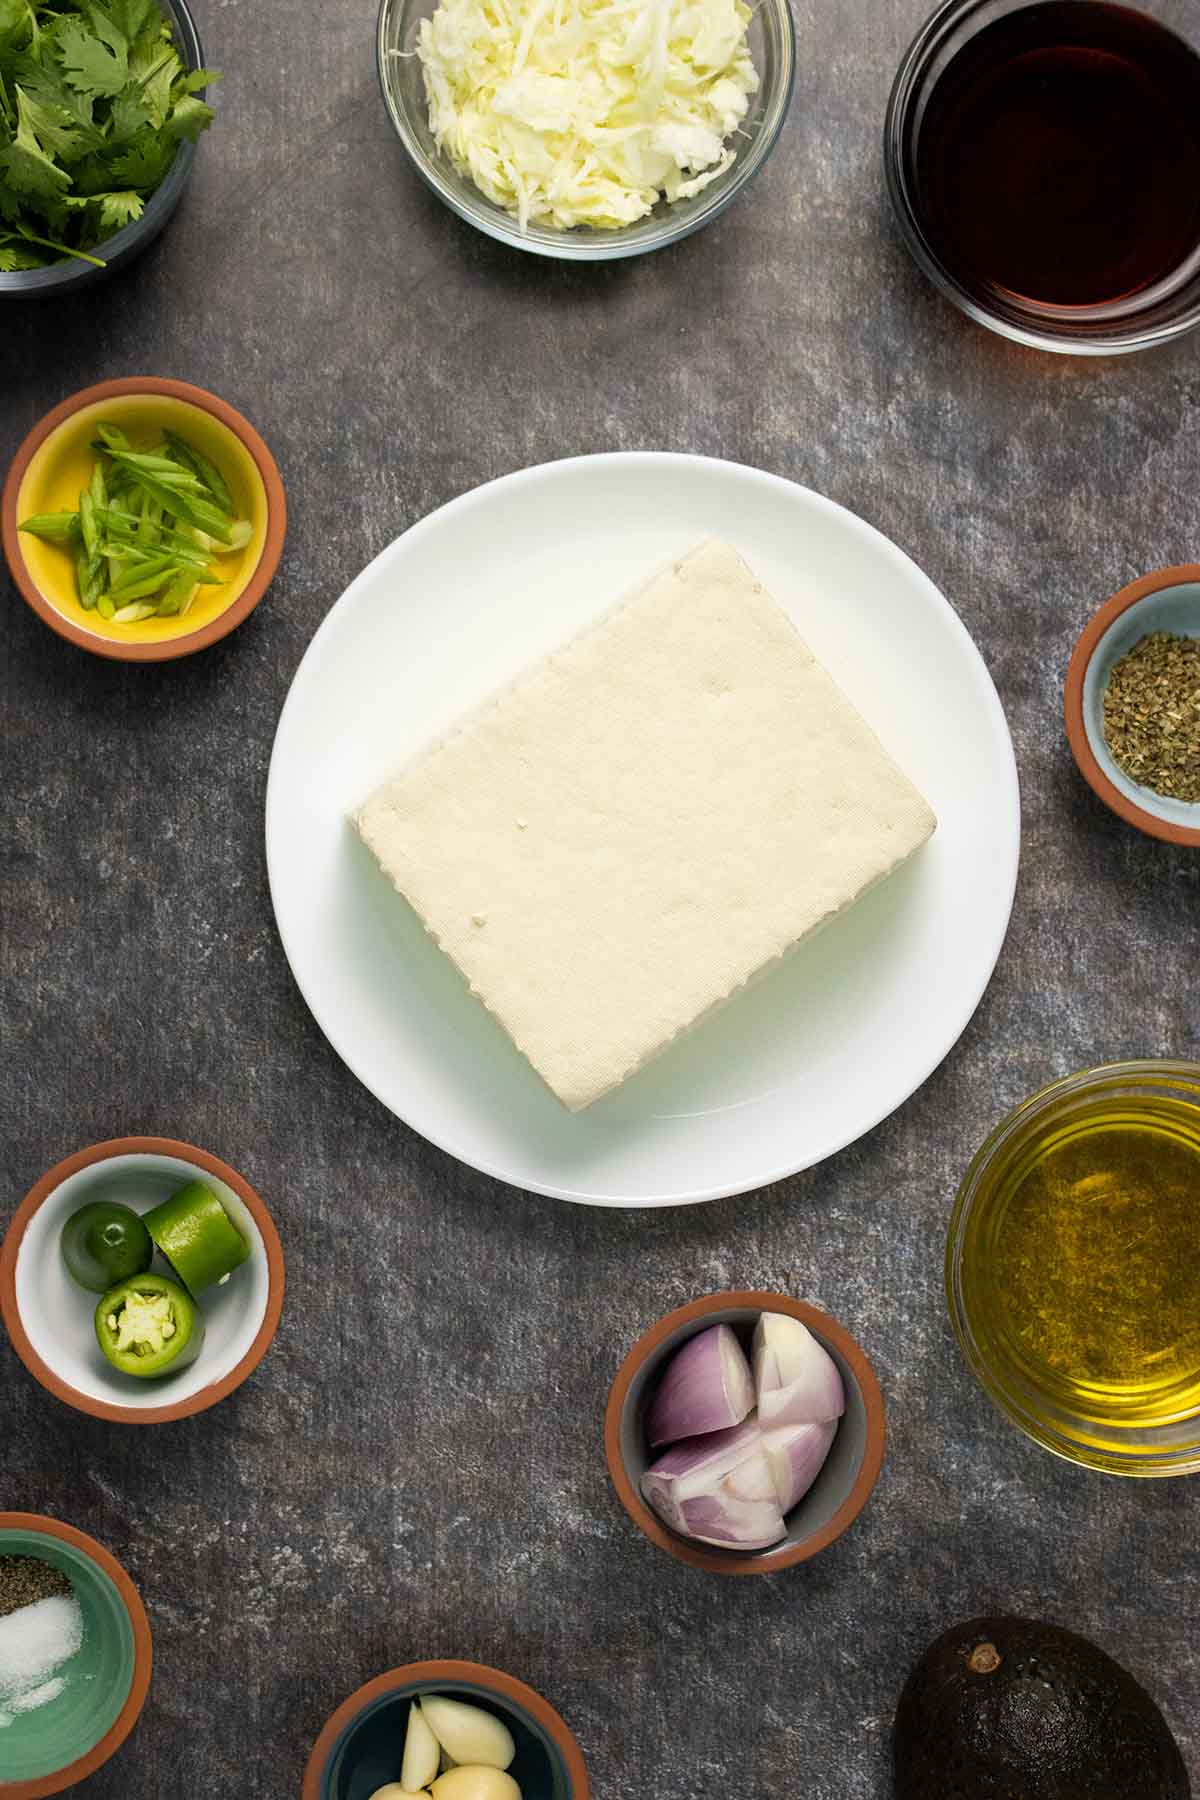 block of tofu on a plate surrounded by chimichurri sauce ingredients